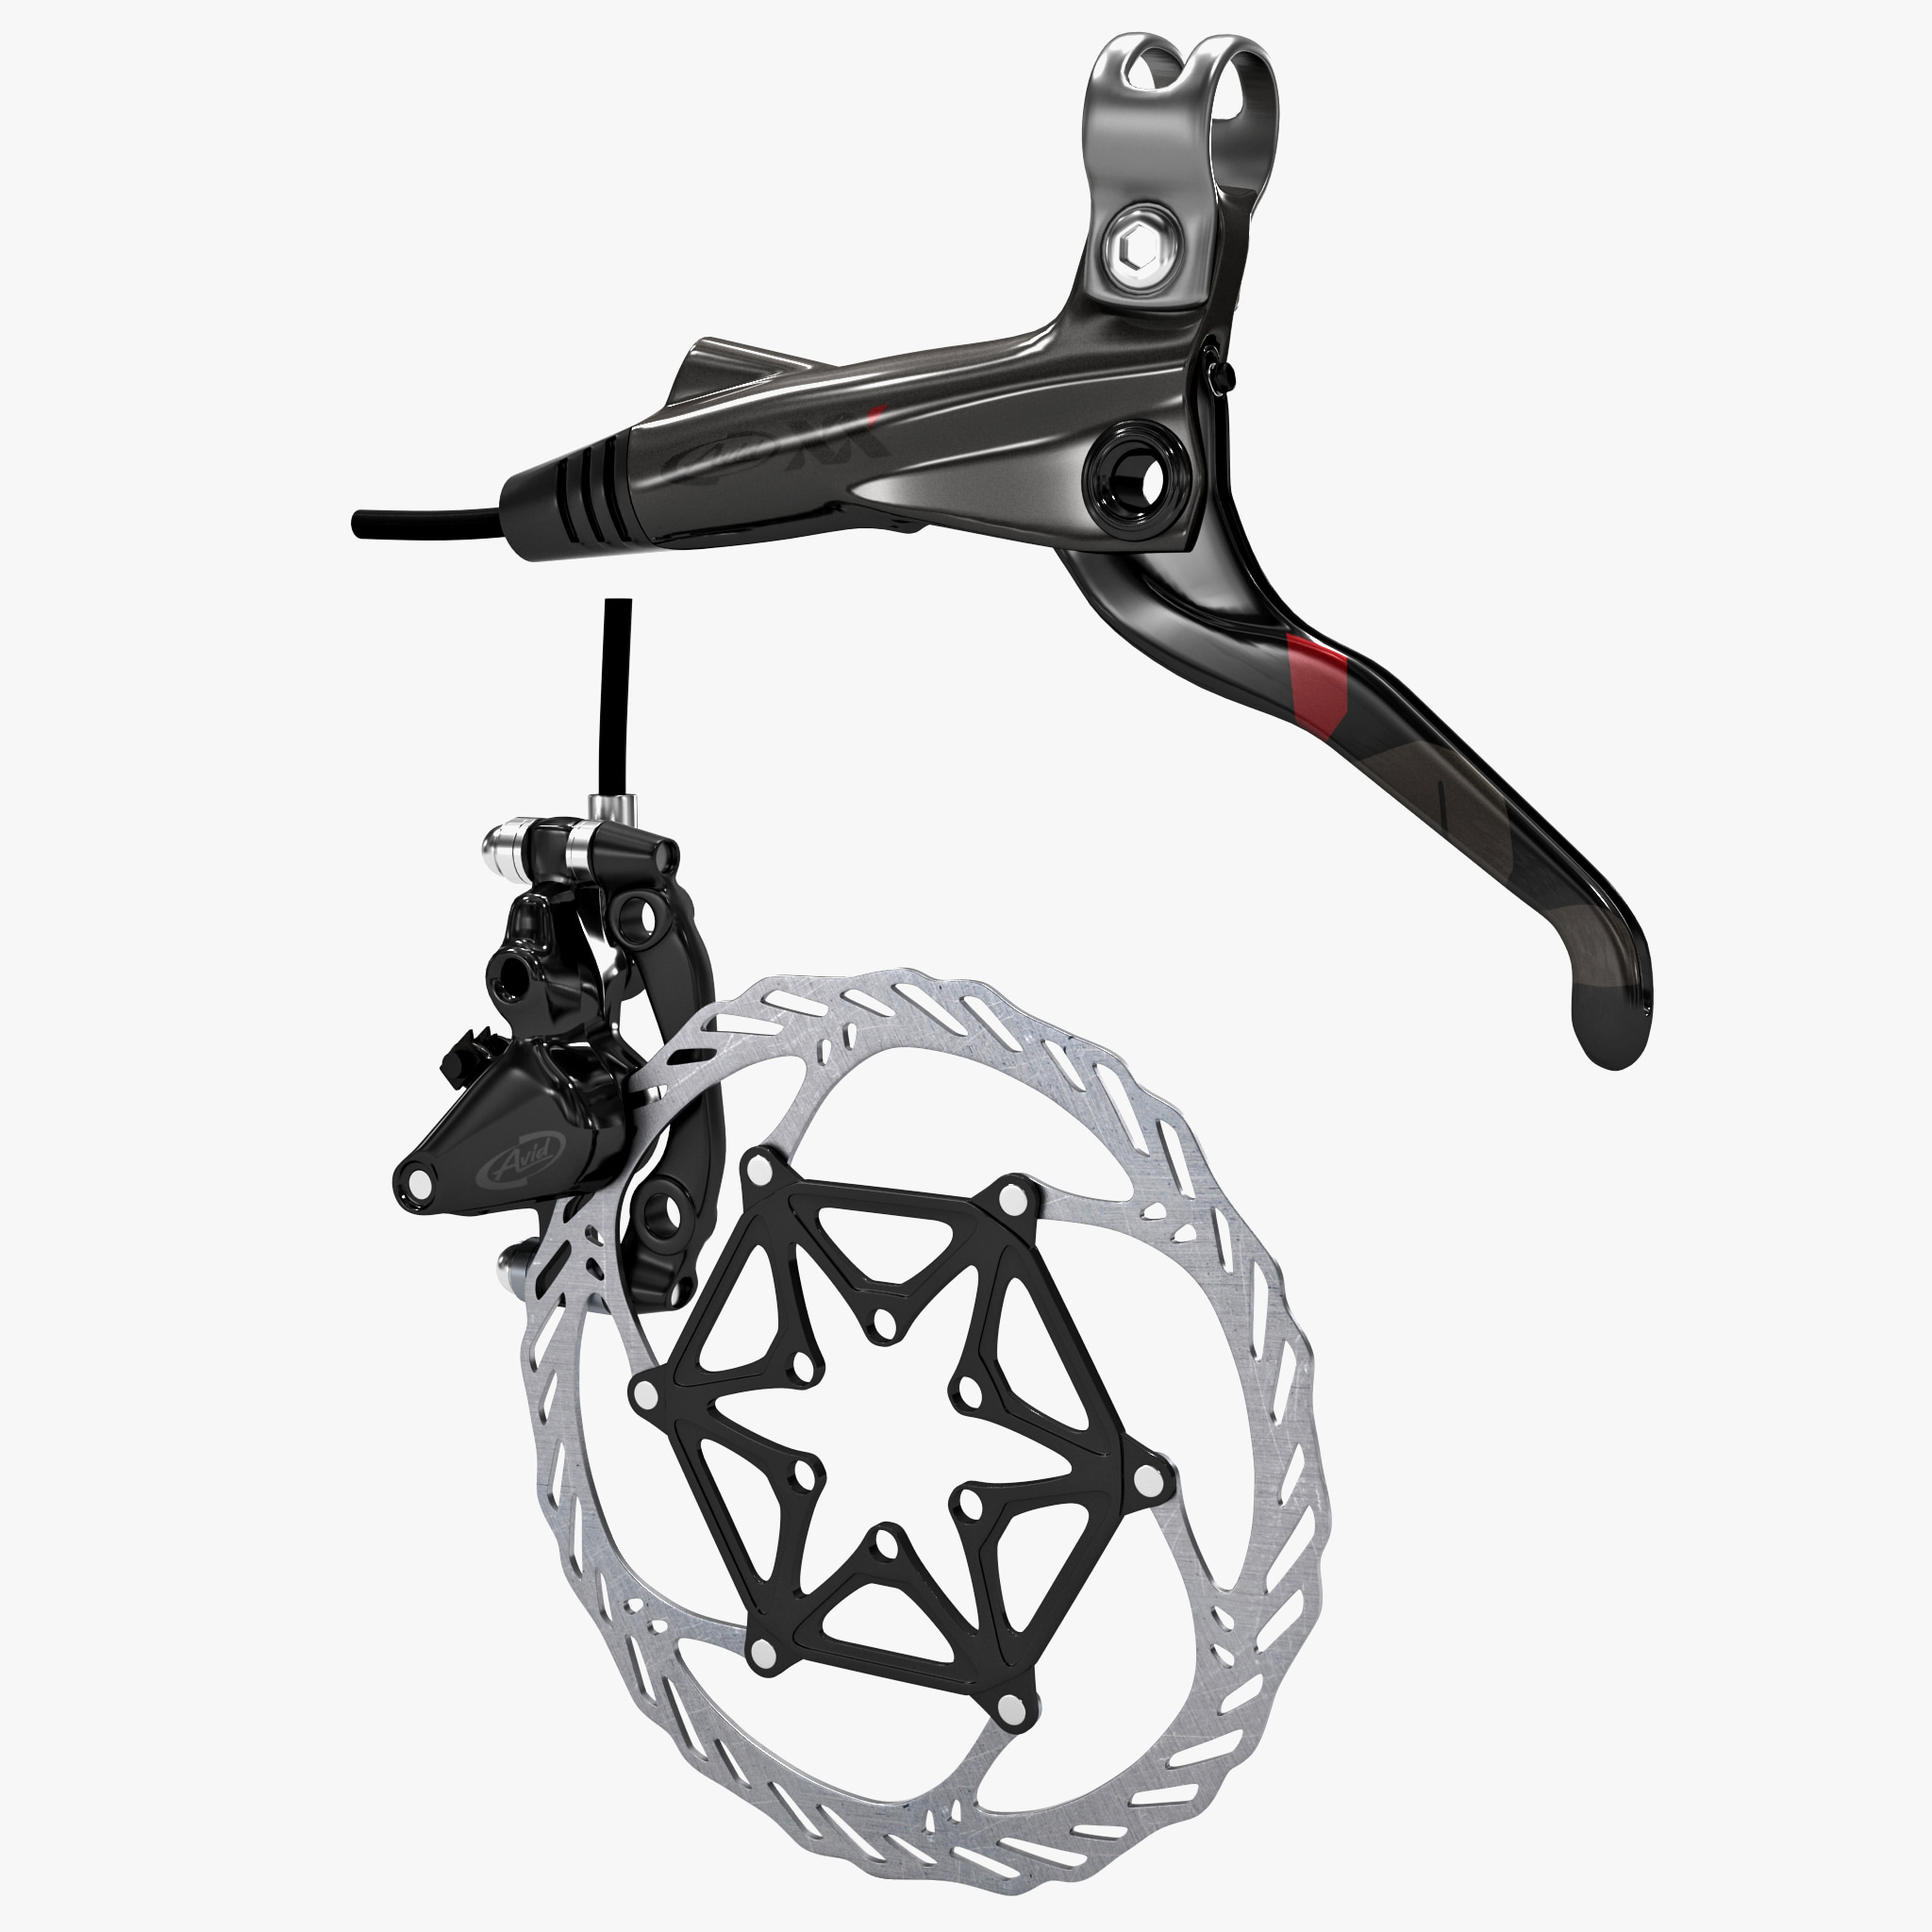 Bicycle Brake Systems : Bicycle brake system avid xx world cup g